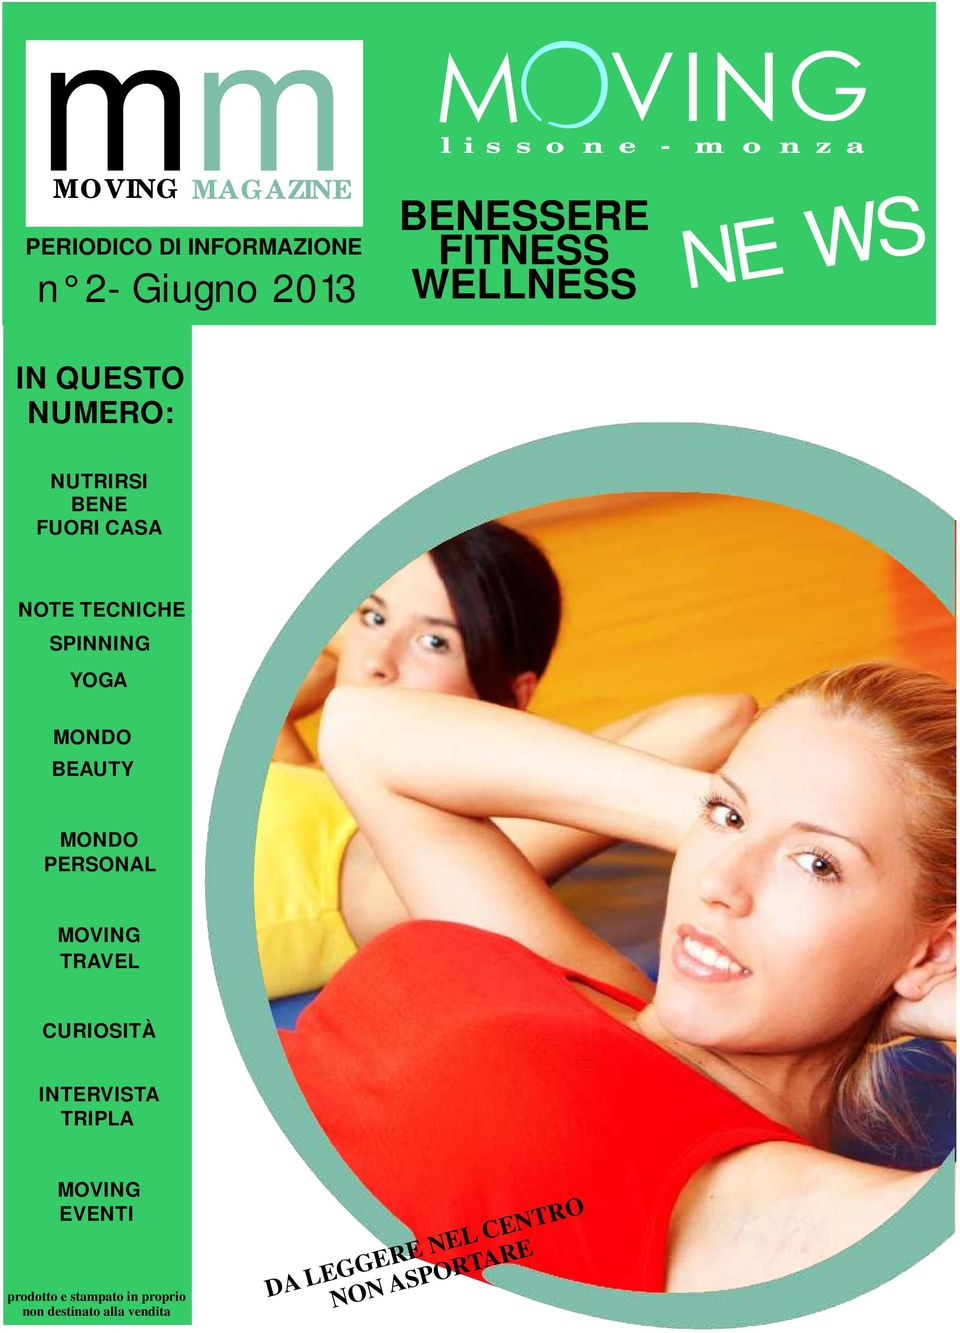 SPINNING YOGA MONDO BEAUTY MONDO PERSONAL MOVING TRAVEL CURIOSITÀ INTERVISTA TRIPLA MOVING